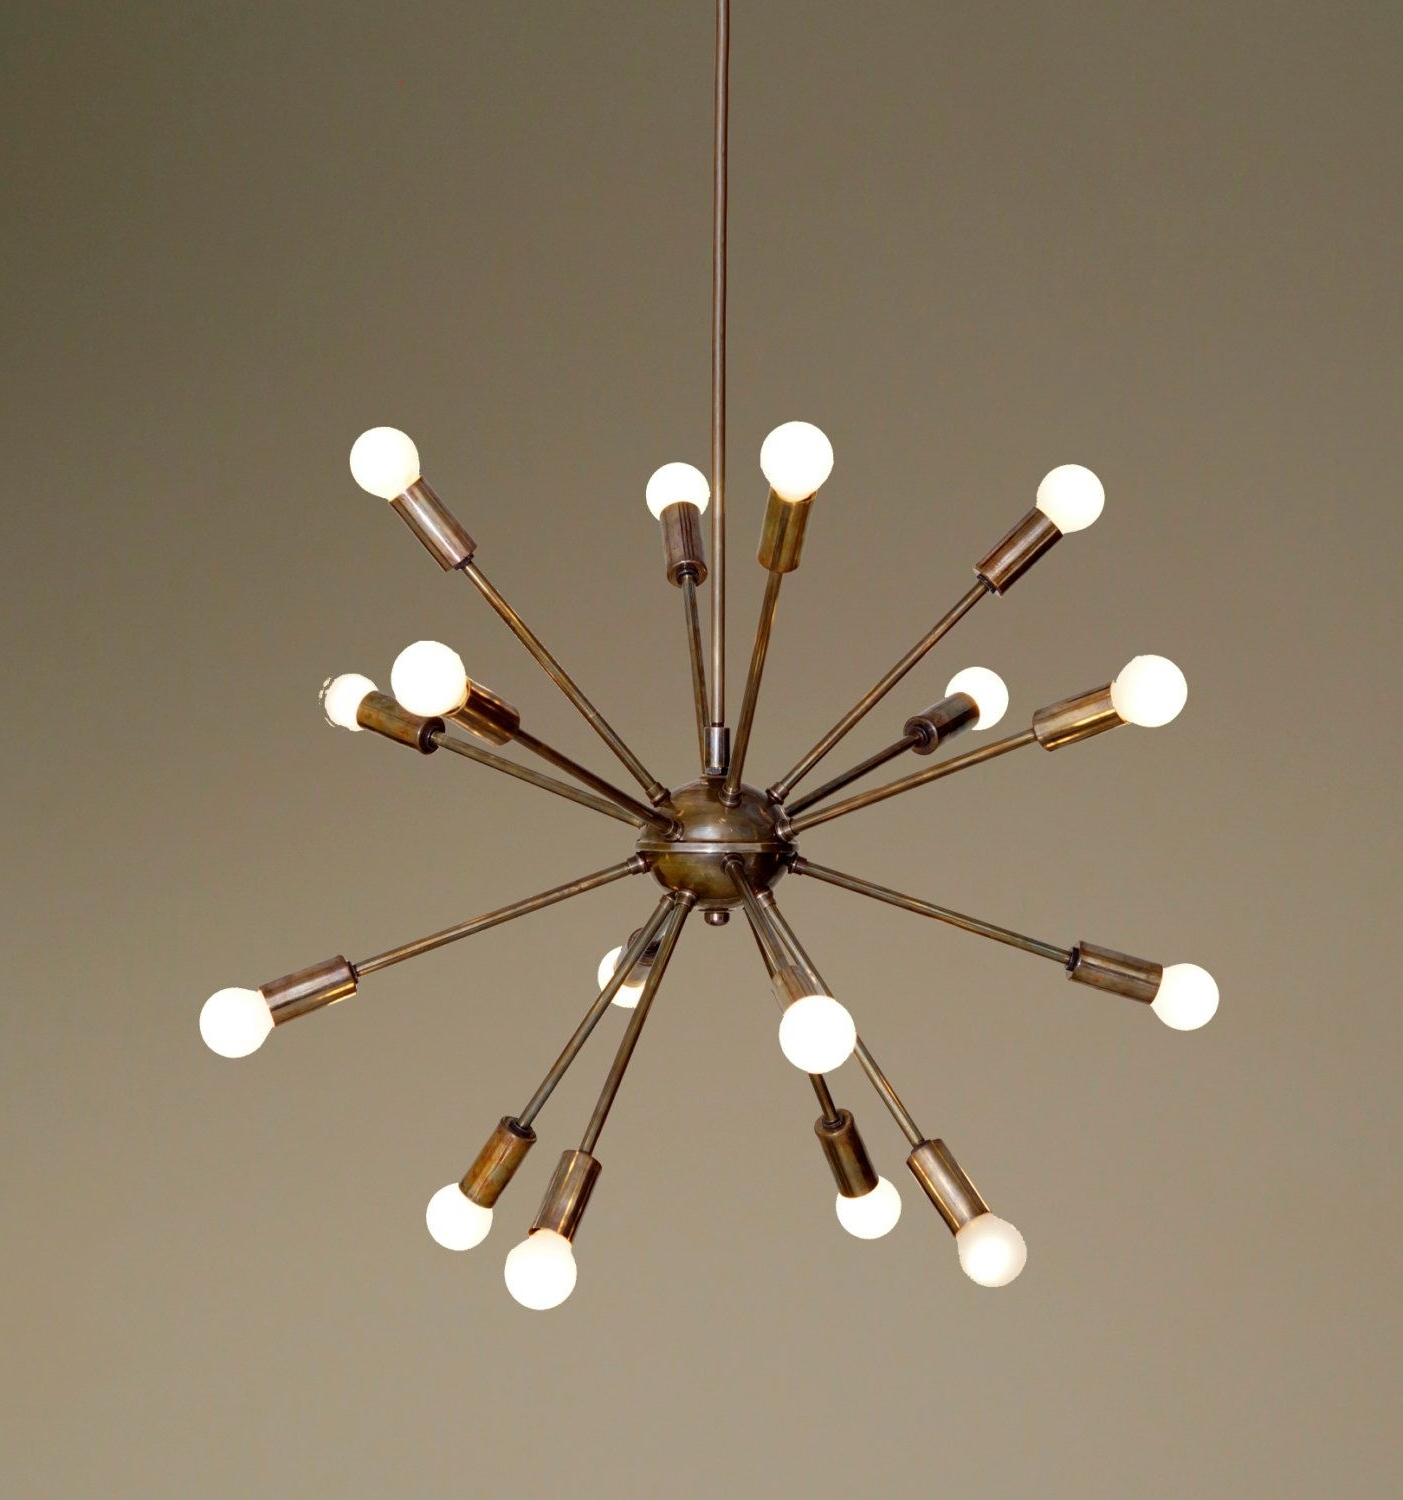 Mid Century Modern Patina Brass Sputnik Chandelier – 16 Arms Sputnik Regarding Recent Atom Chandeliers (View 11 of 15)